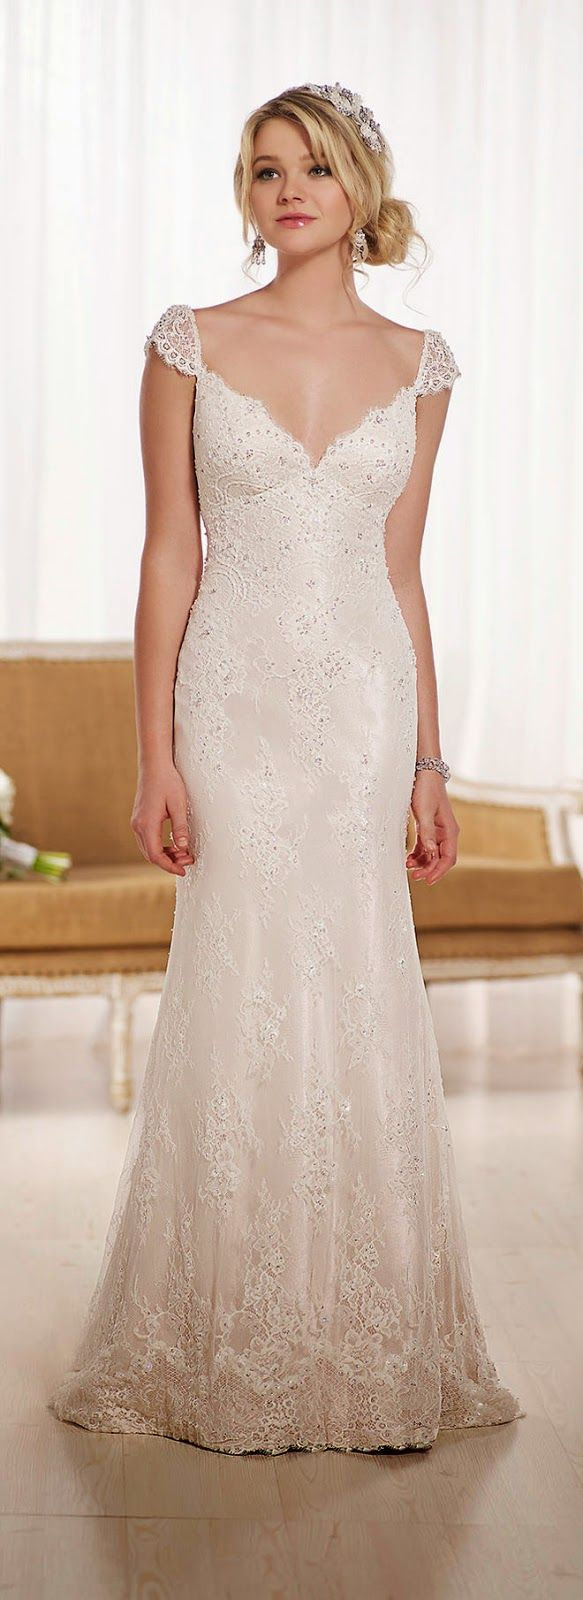 151 Best Wedding Dresses Images On Pinterest Wedding